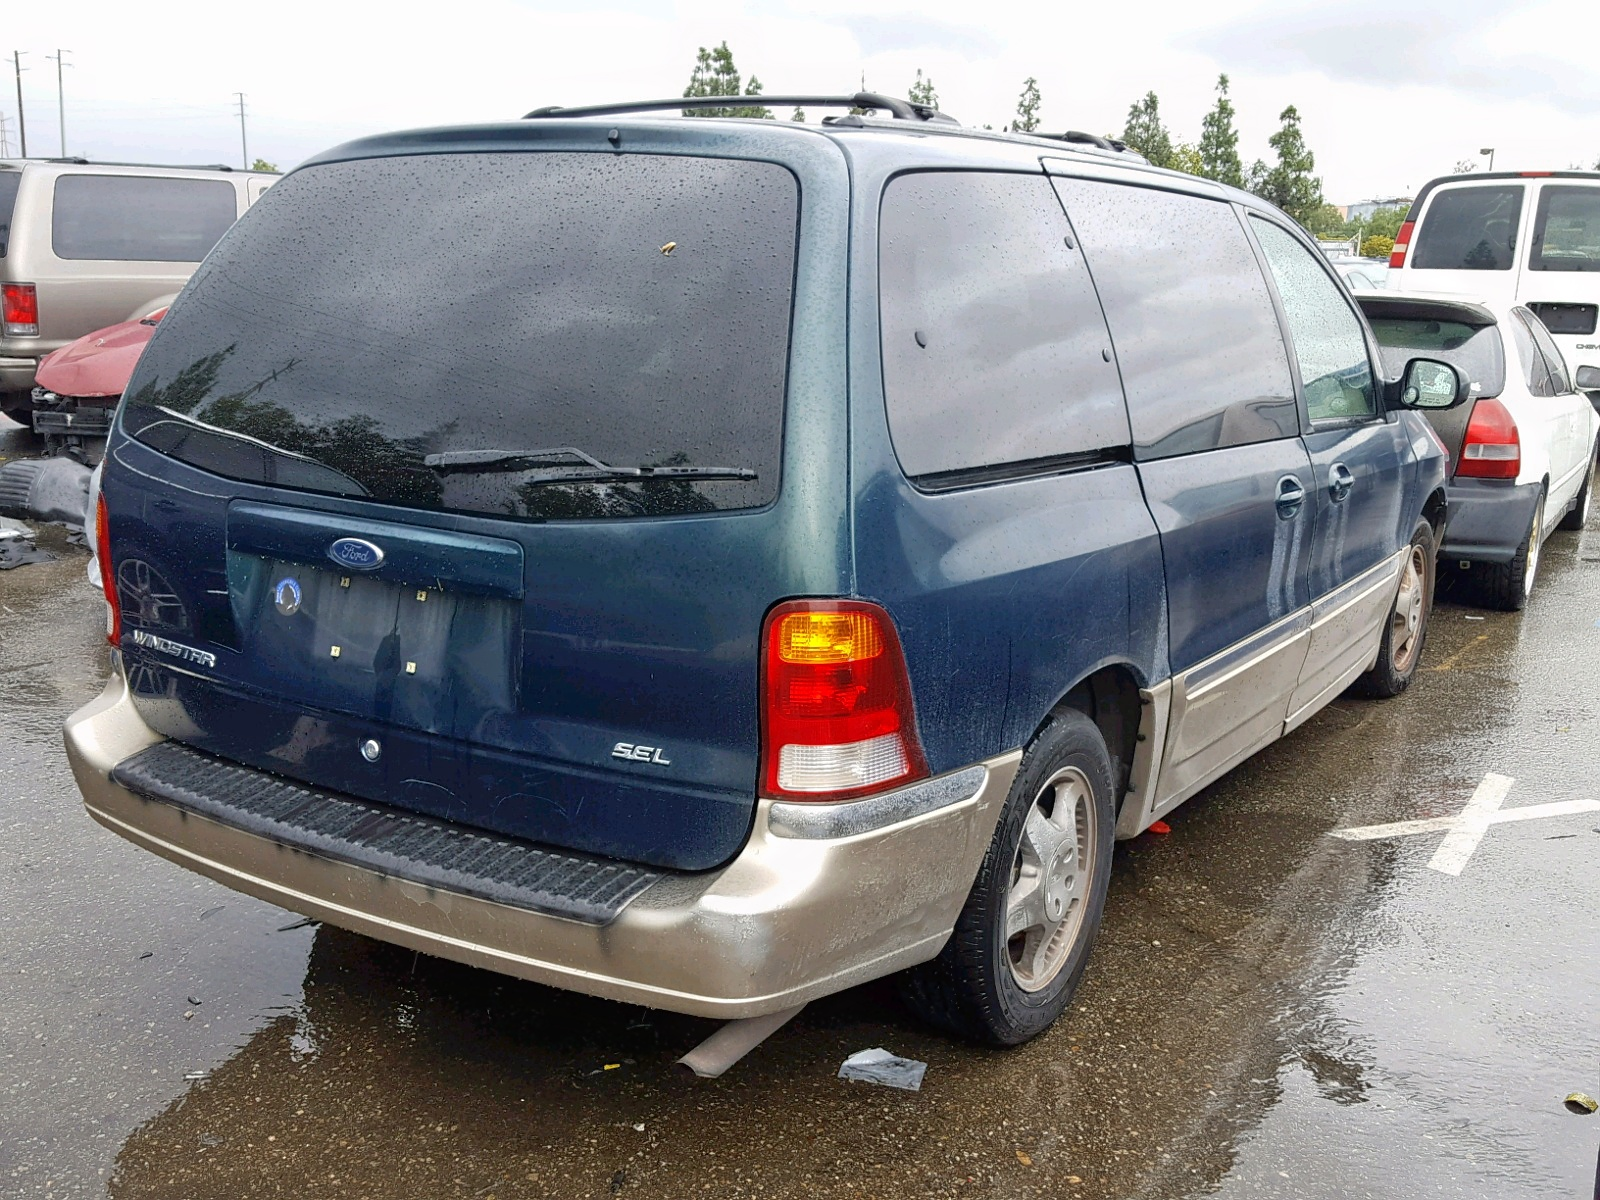 hight resolution of  2fmda5349yba17220 2000 ford windstar s 3 8l rear view 2fmda5349yba17220